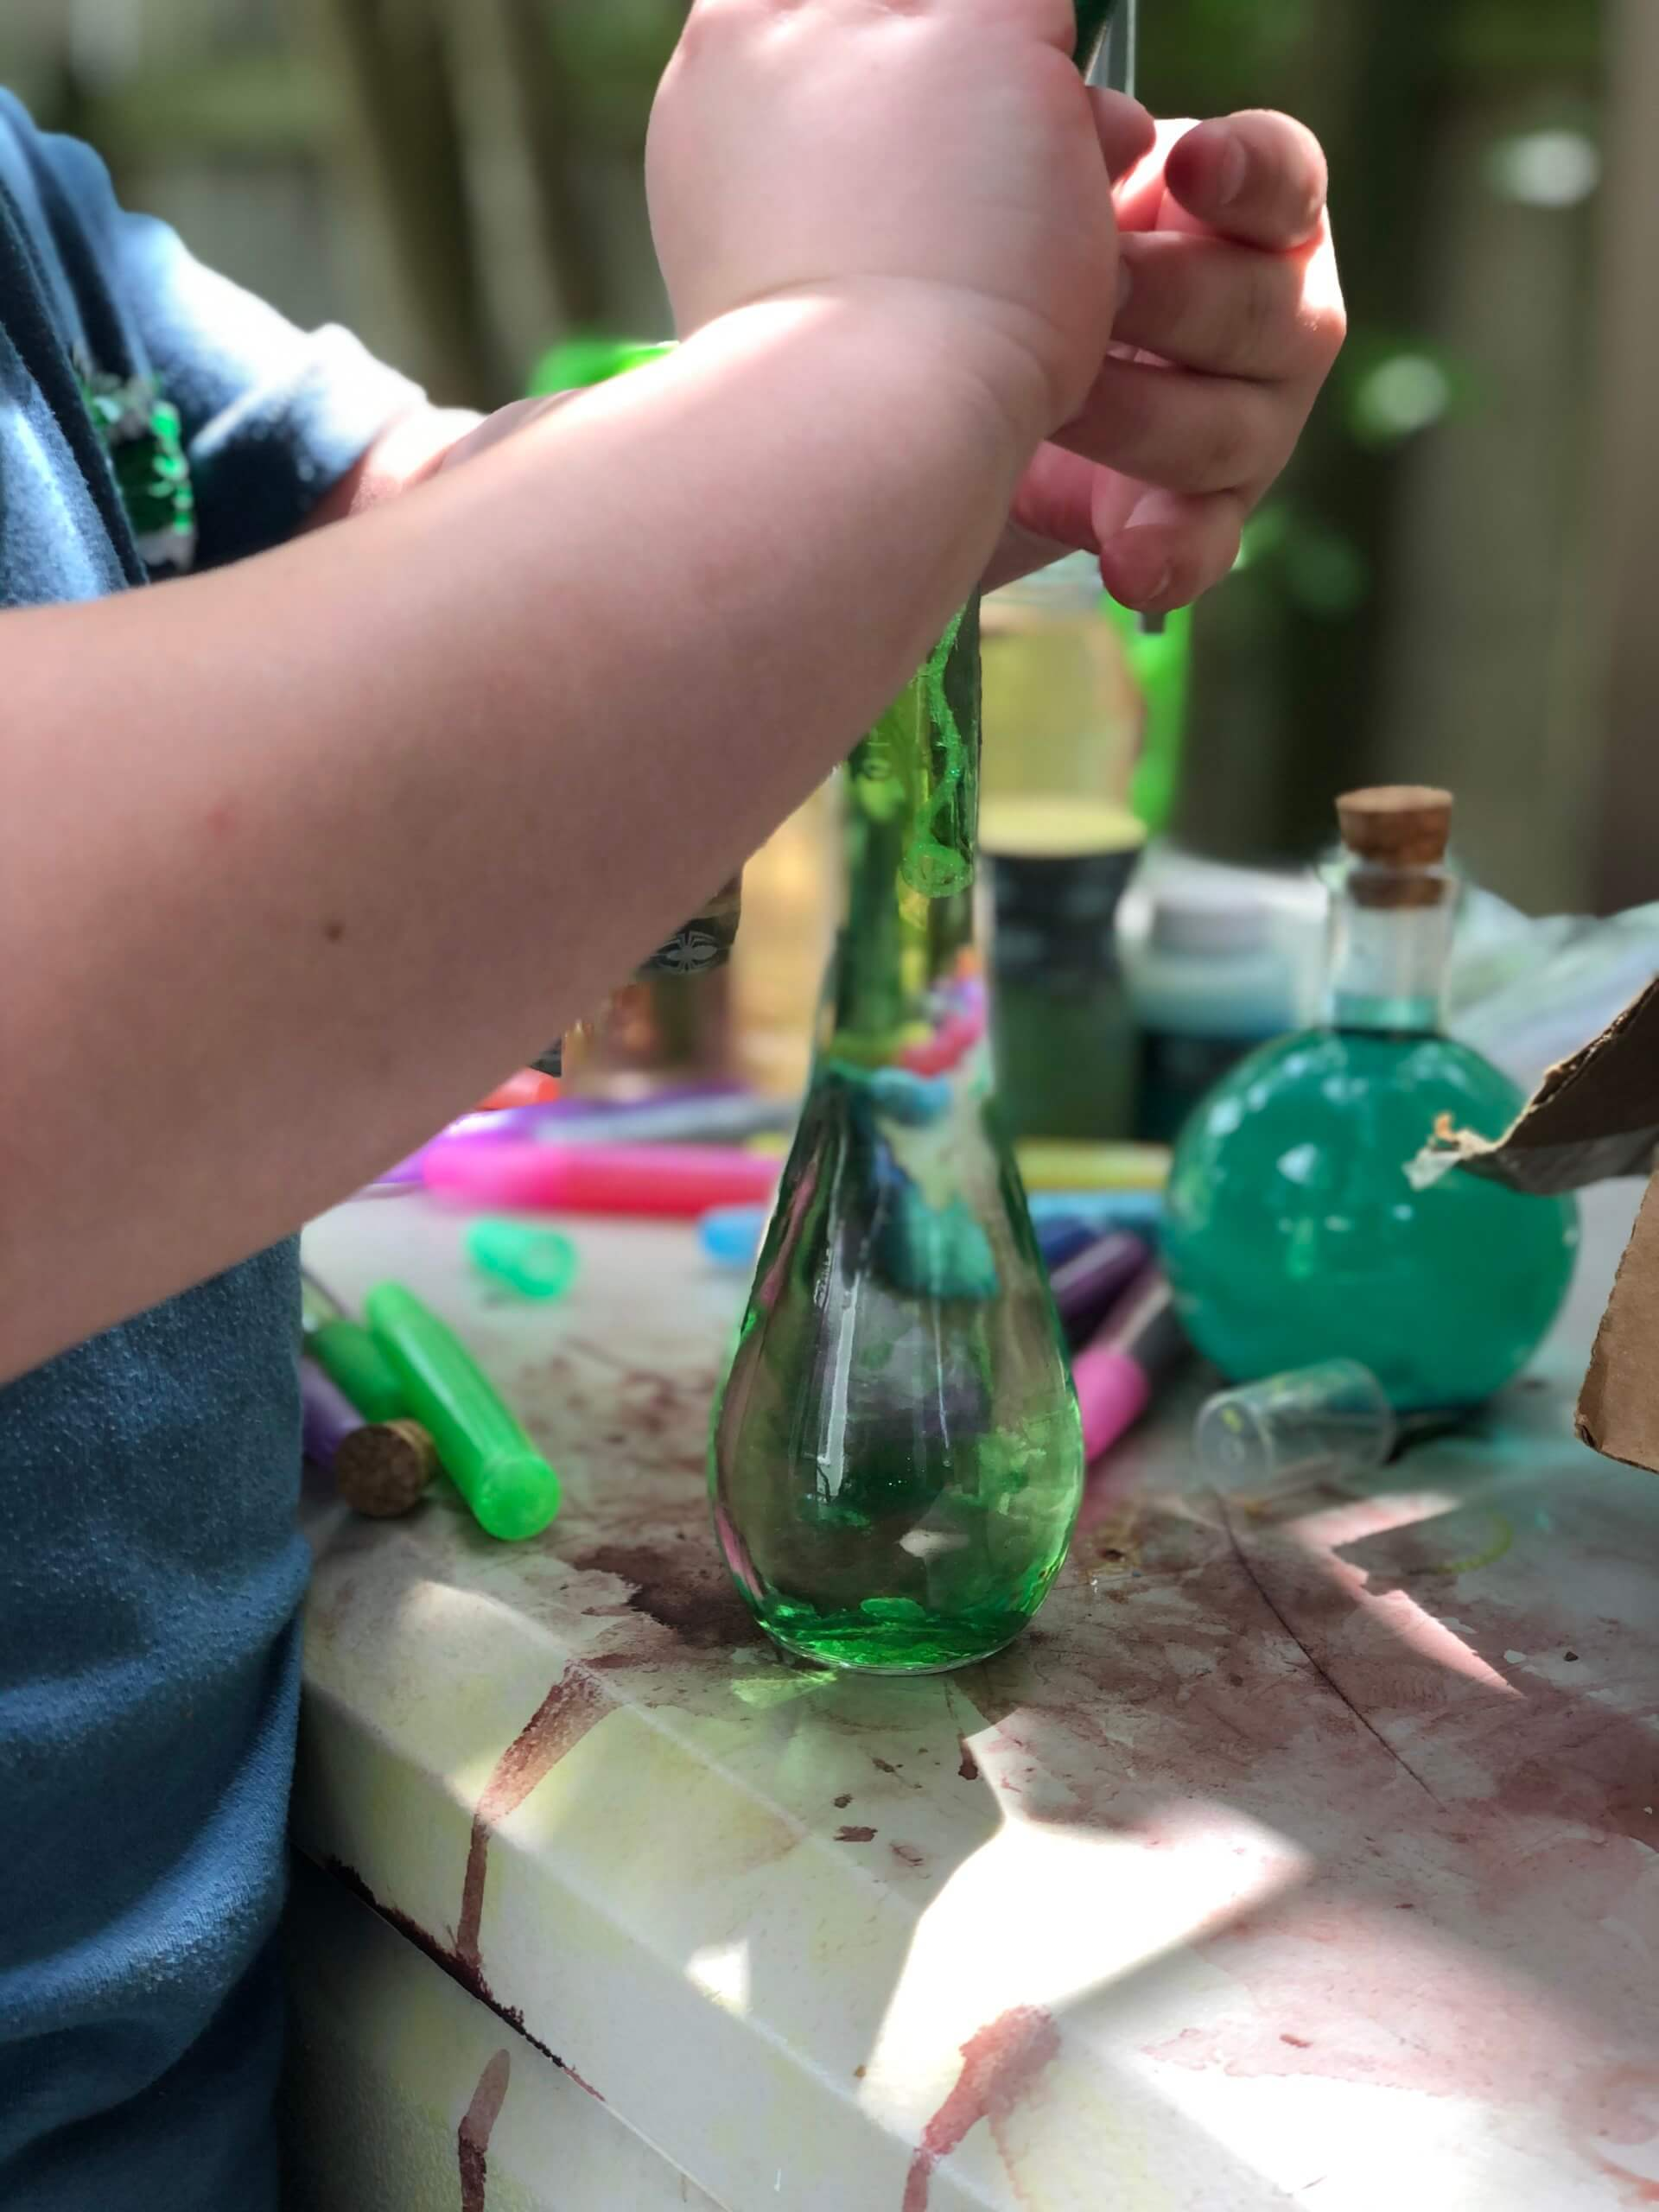 Child making magic potion with colorful bottles